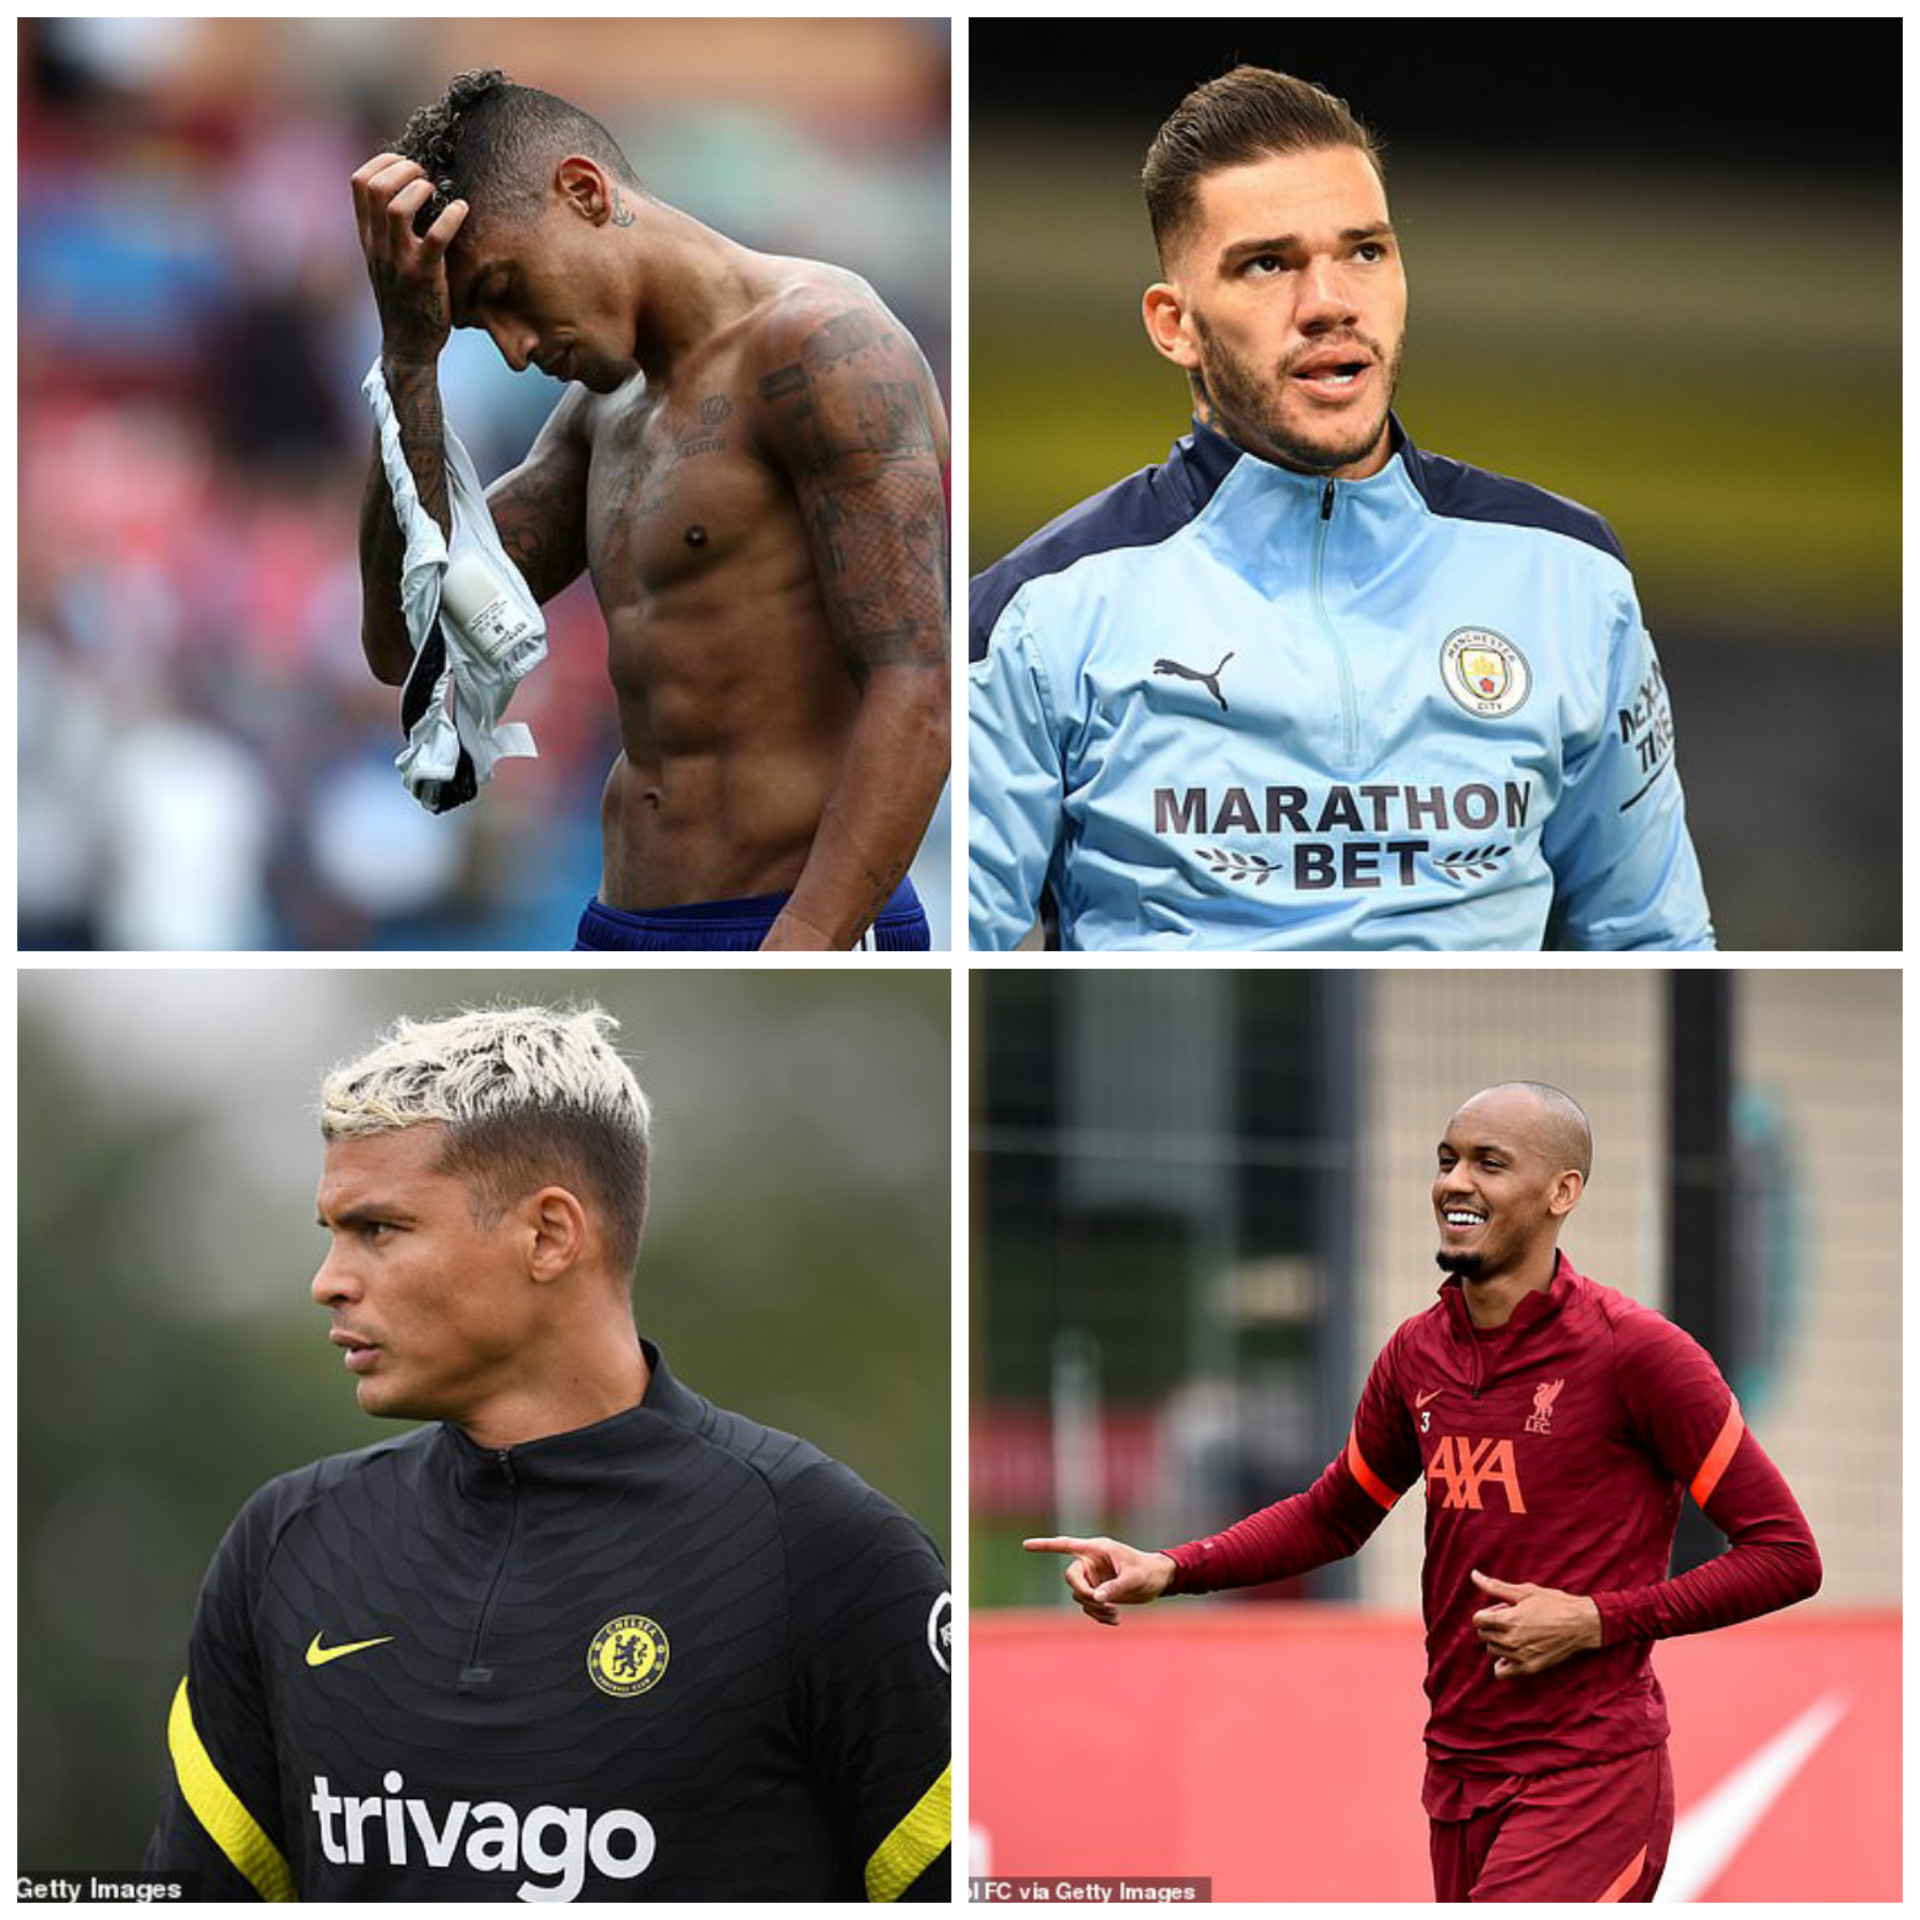 FIFA bans 10 Brazilian players from playing in Premier League for 5 days after EPL clubs refused to release players for international duty citing Covid-19